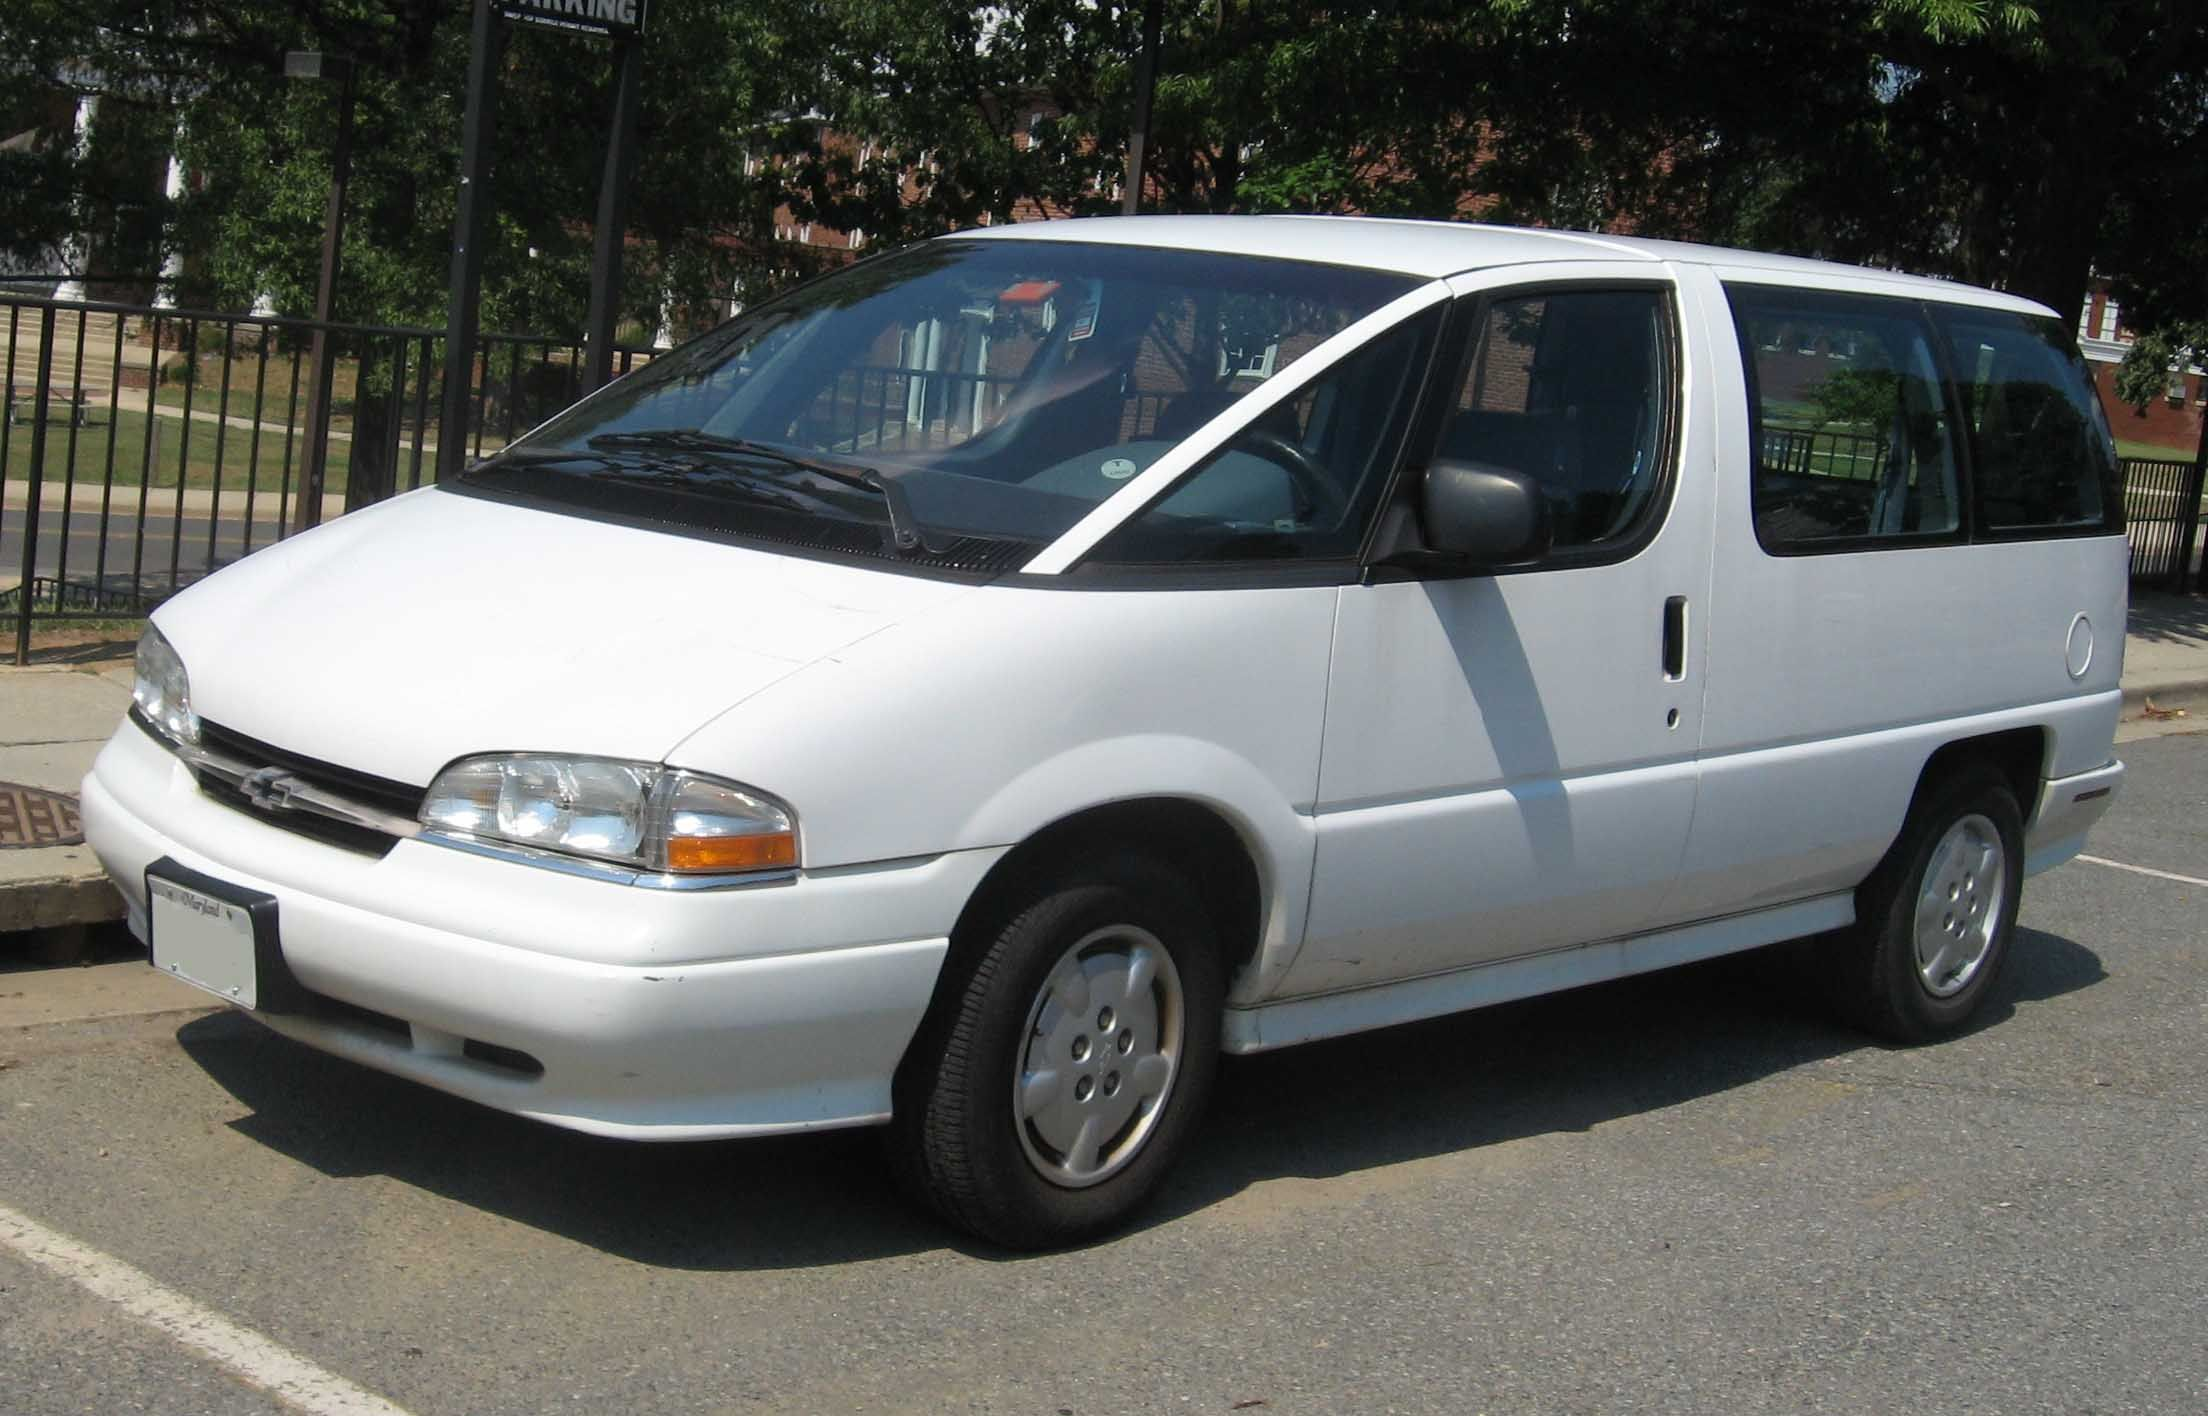 This Was After They Refreshed The Nose Of The Vans Chevrolet Lumina Chevrolet Mini Van